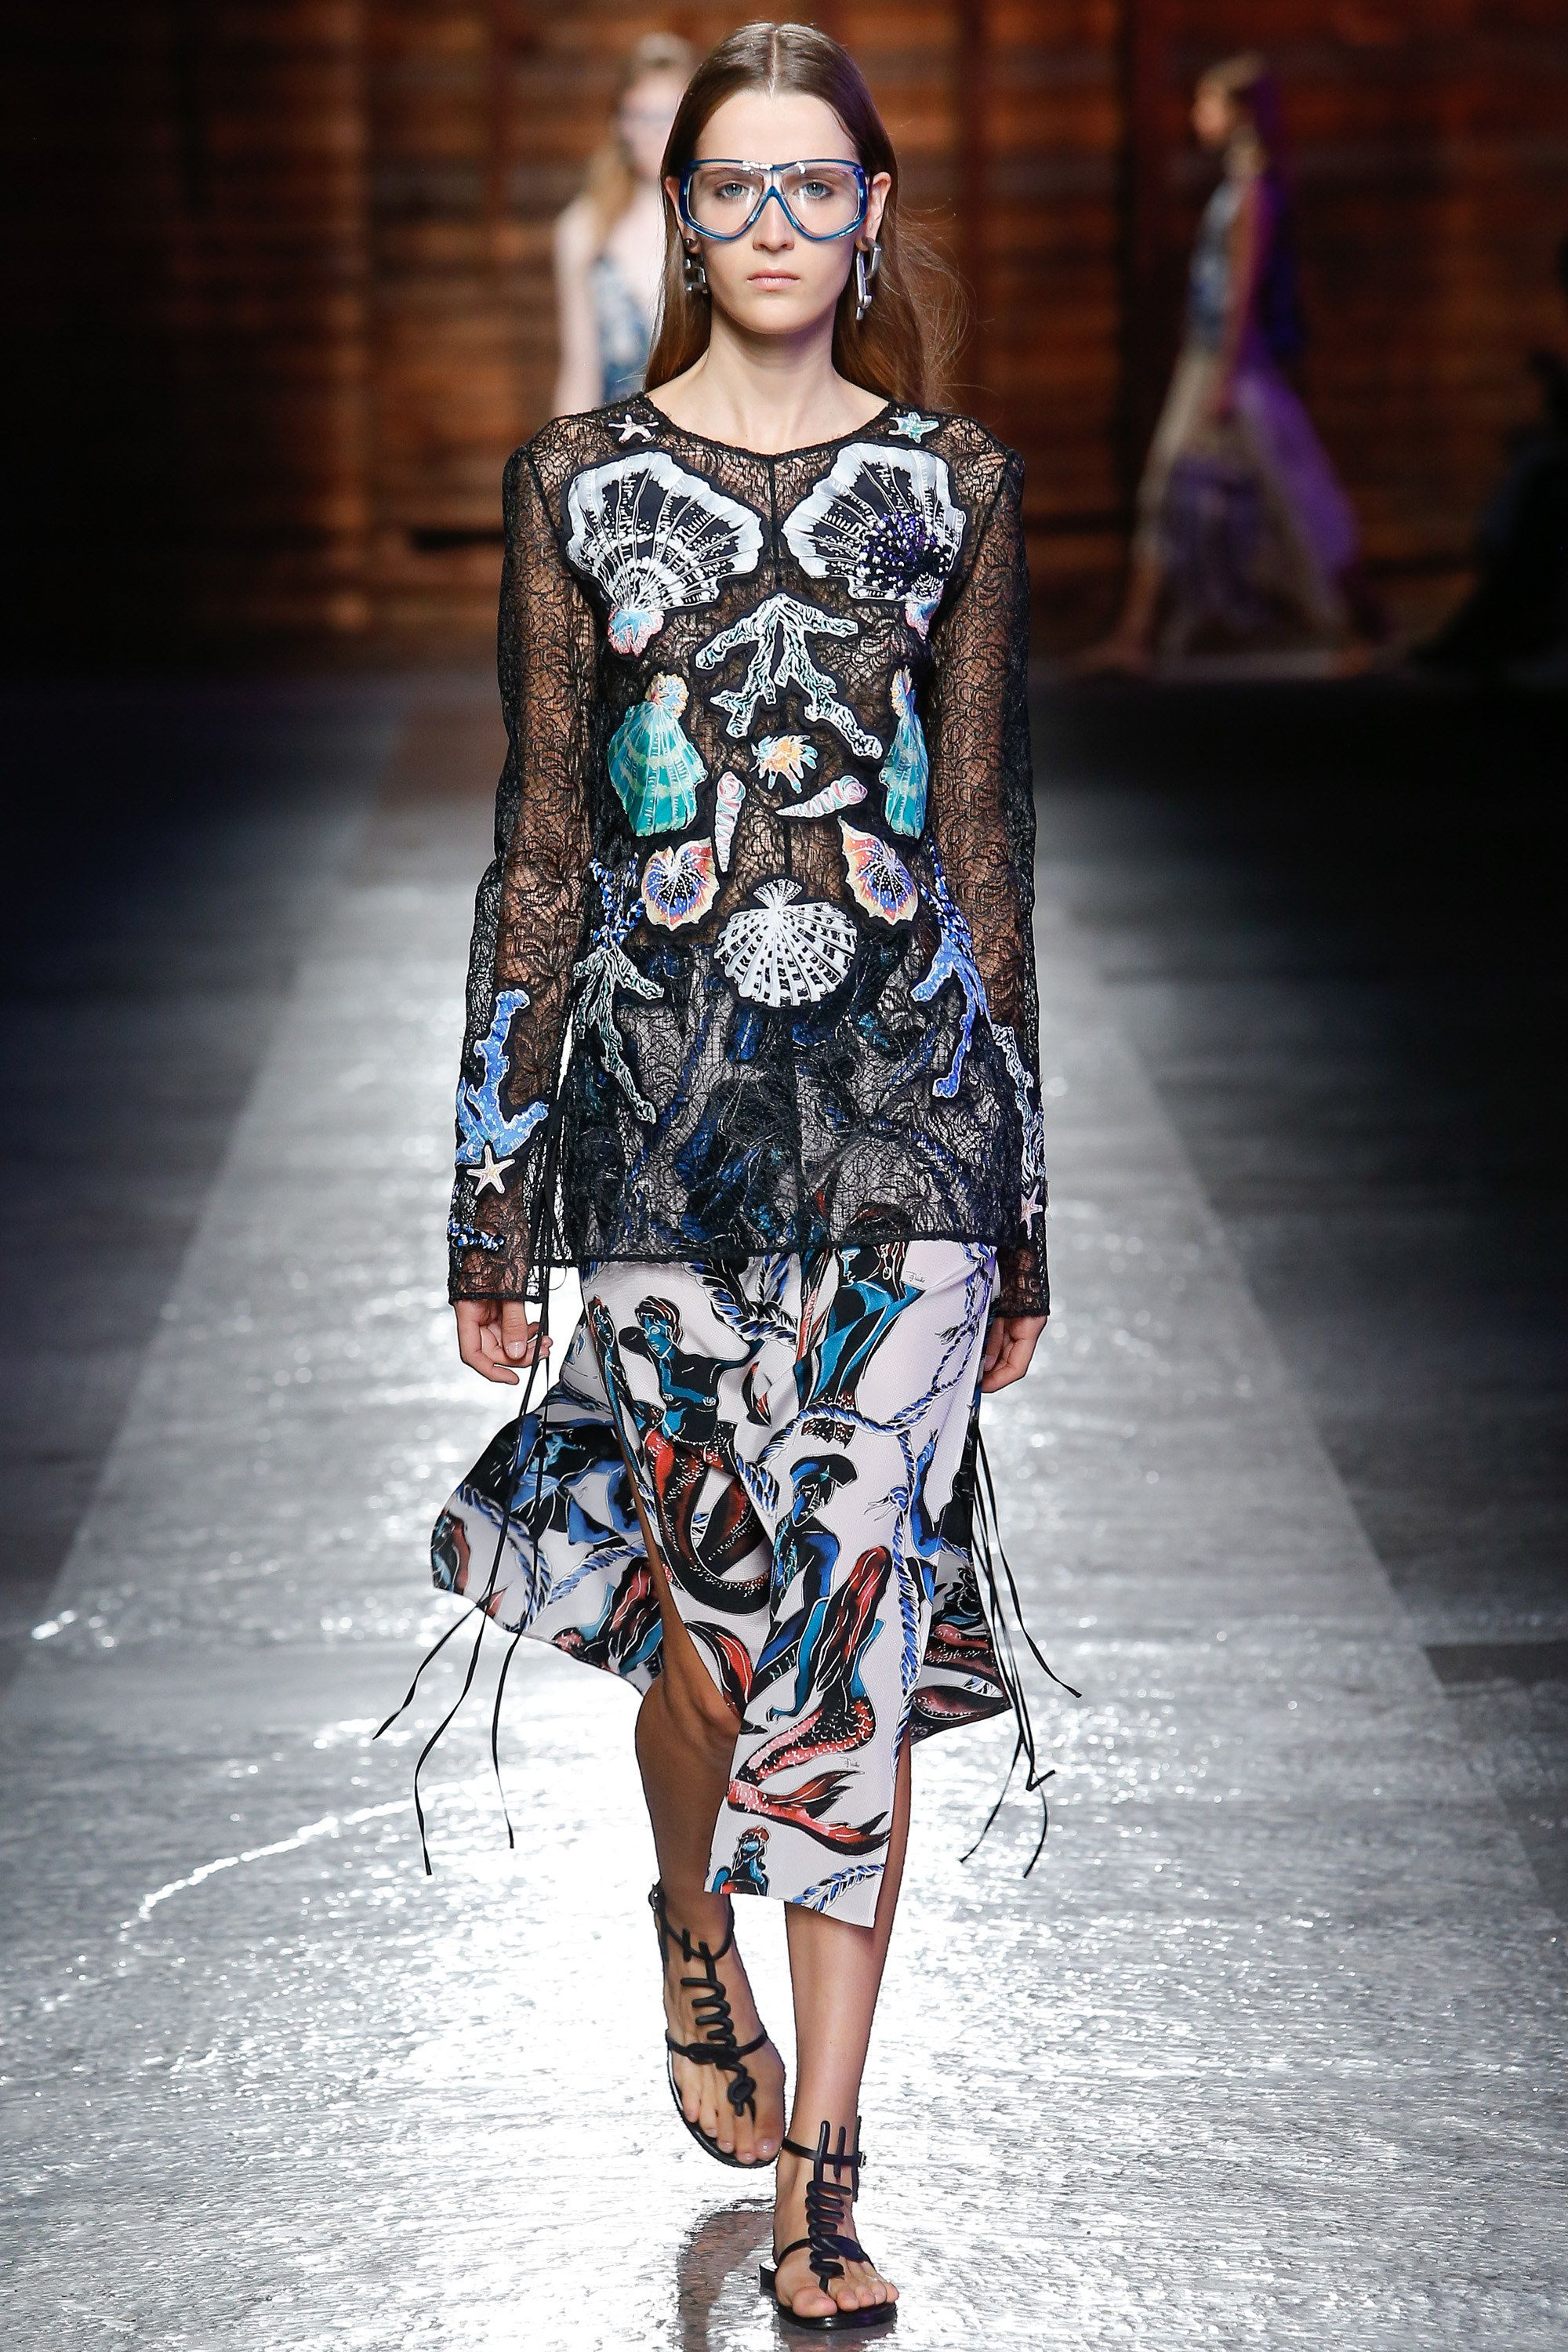 http://www.vogue.com/fashion-shows/spring-2016-ready-to-wear/emilio-pucci/slideshow/collection